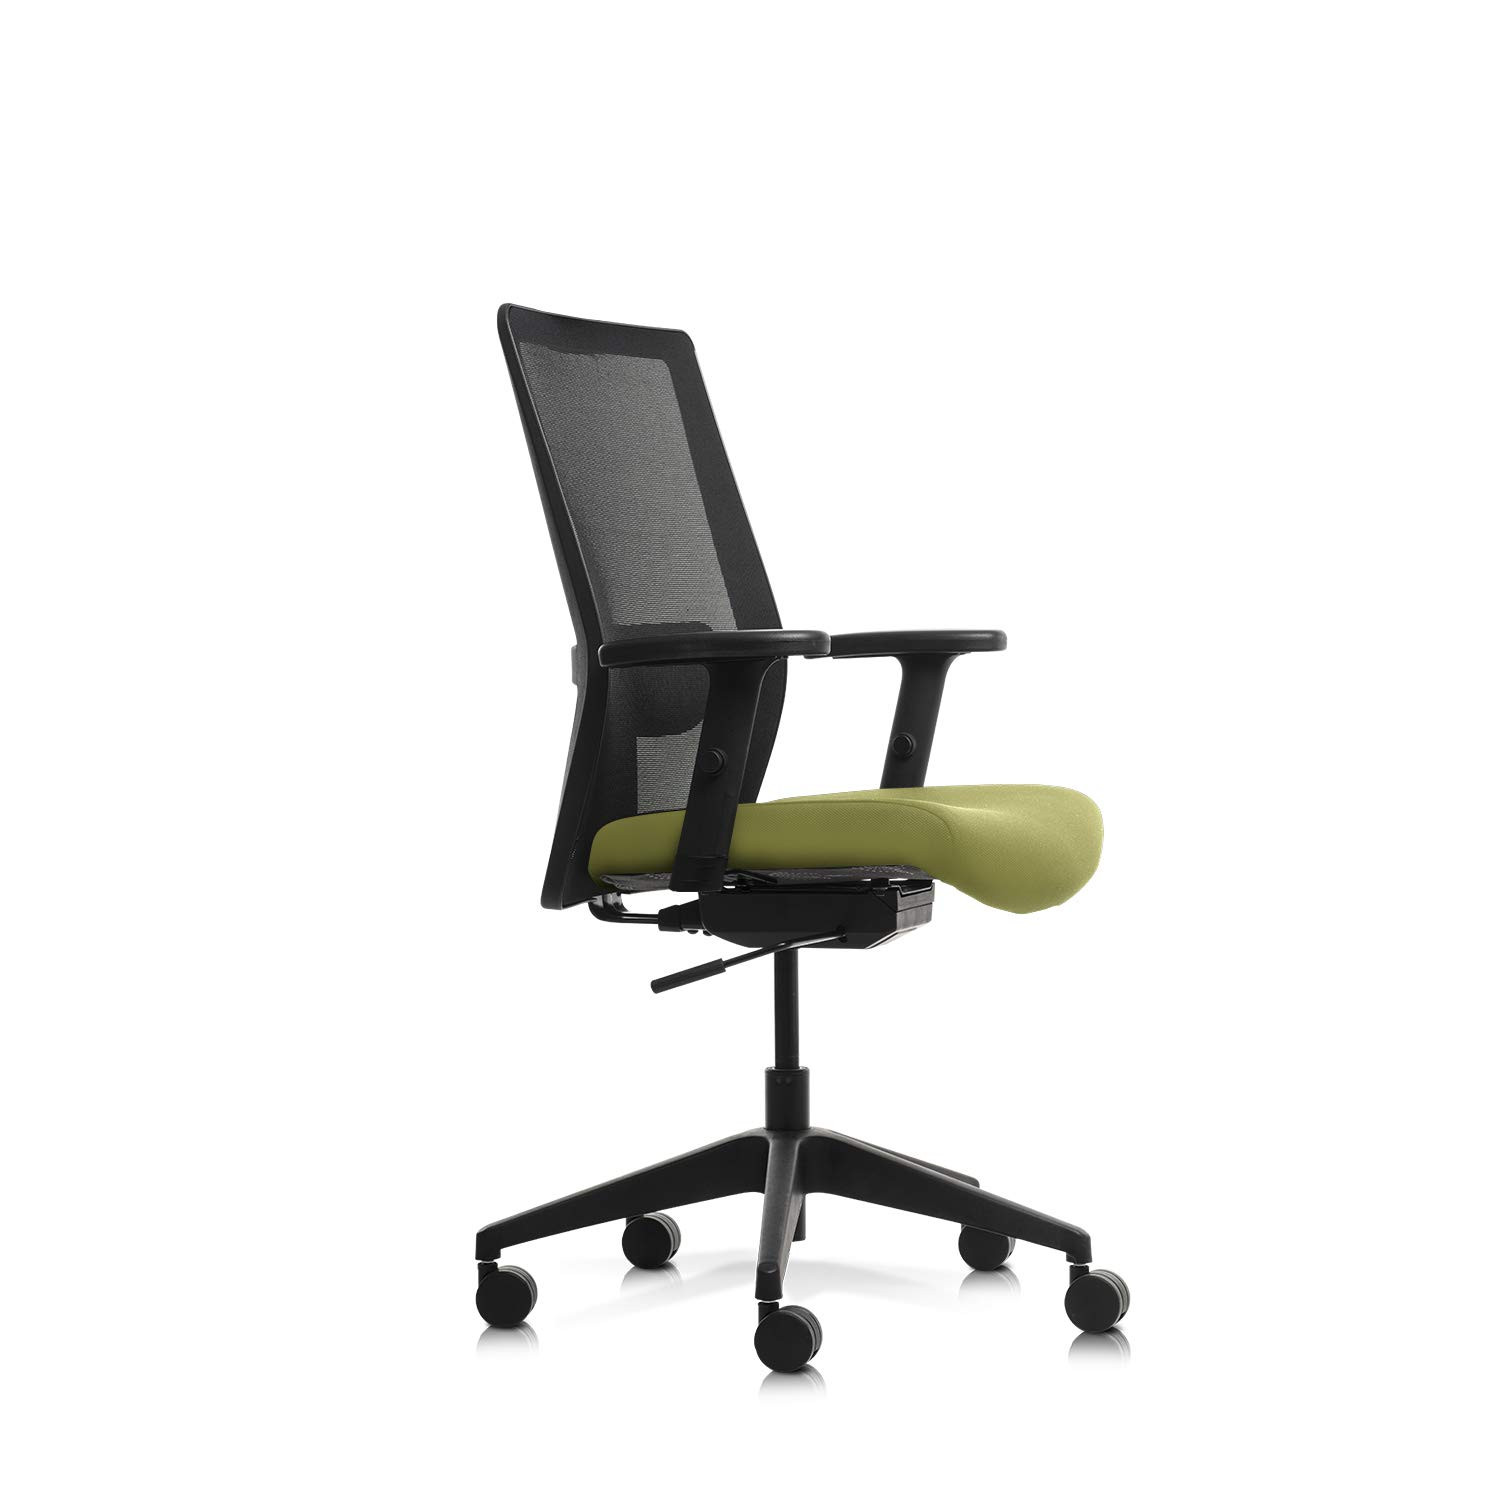 2.Wipro Furniture Adapt Office Chair